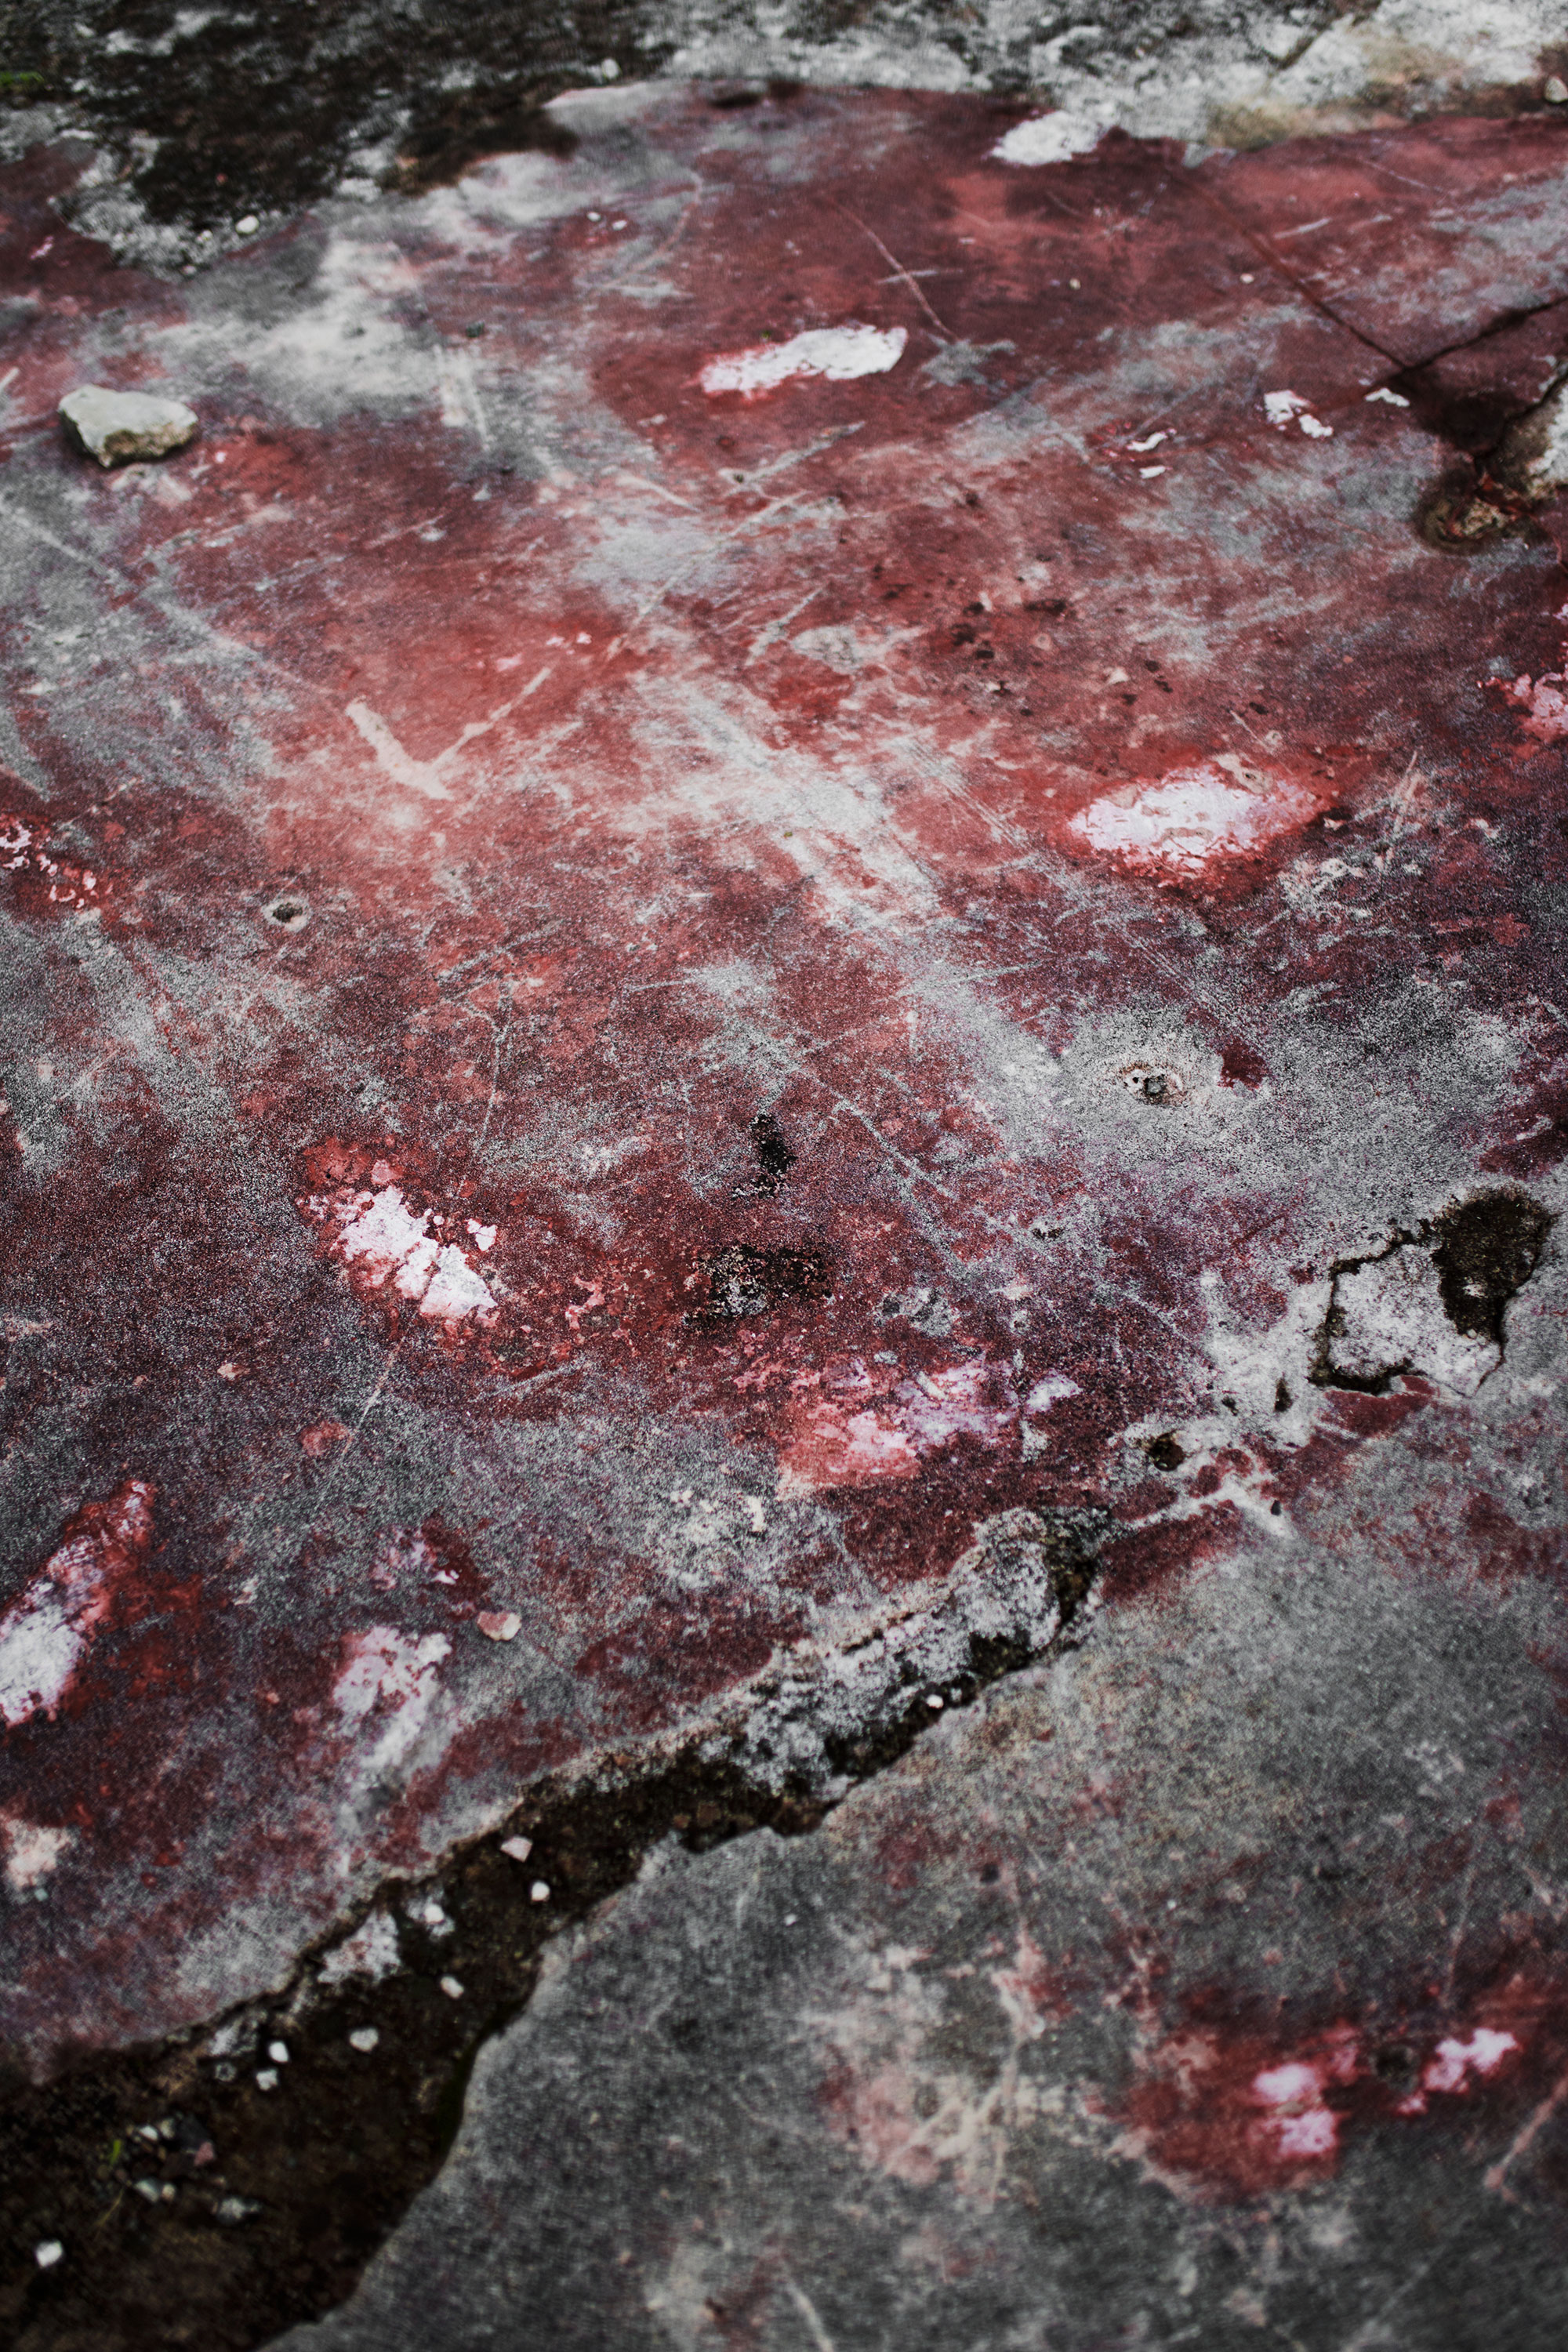 """ELLE PÉREZ. """"STONE BLOOM"""" (2018). ARCHIVAL PIGMENT PRINT. 44 3⁄8 ×  31 INCHES. EDITION OF 5 PLUS II AP. IMAGE COURTESY OF THE ARTIST AND 47 CANAL, NEW YORK."""